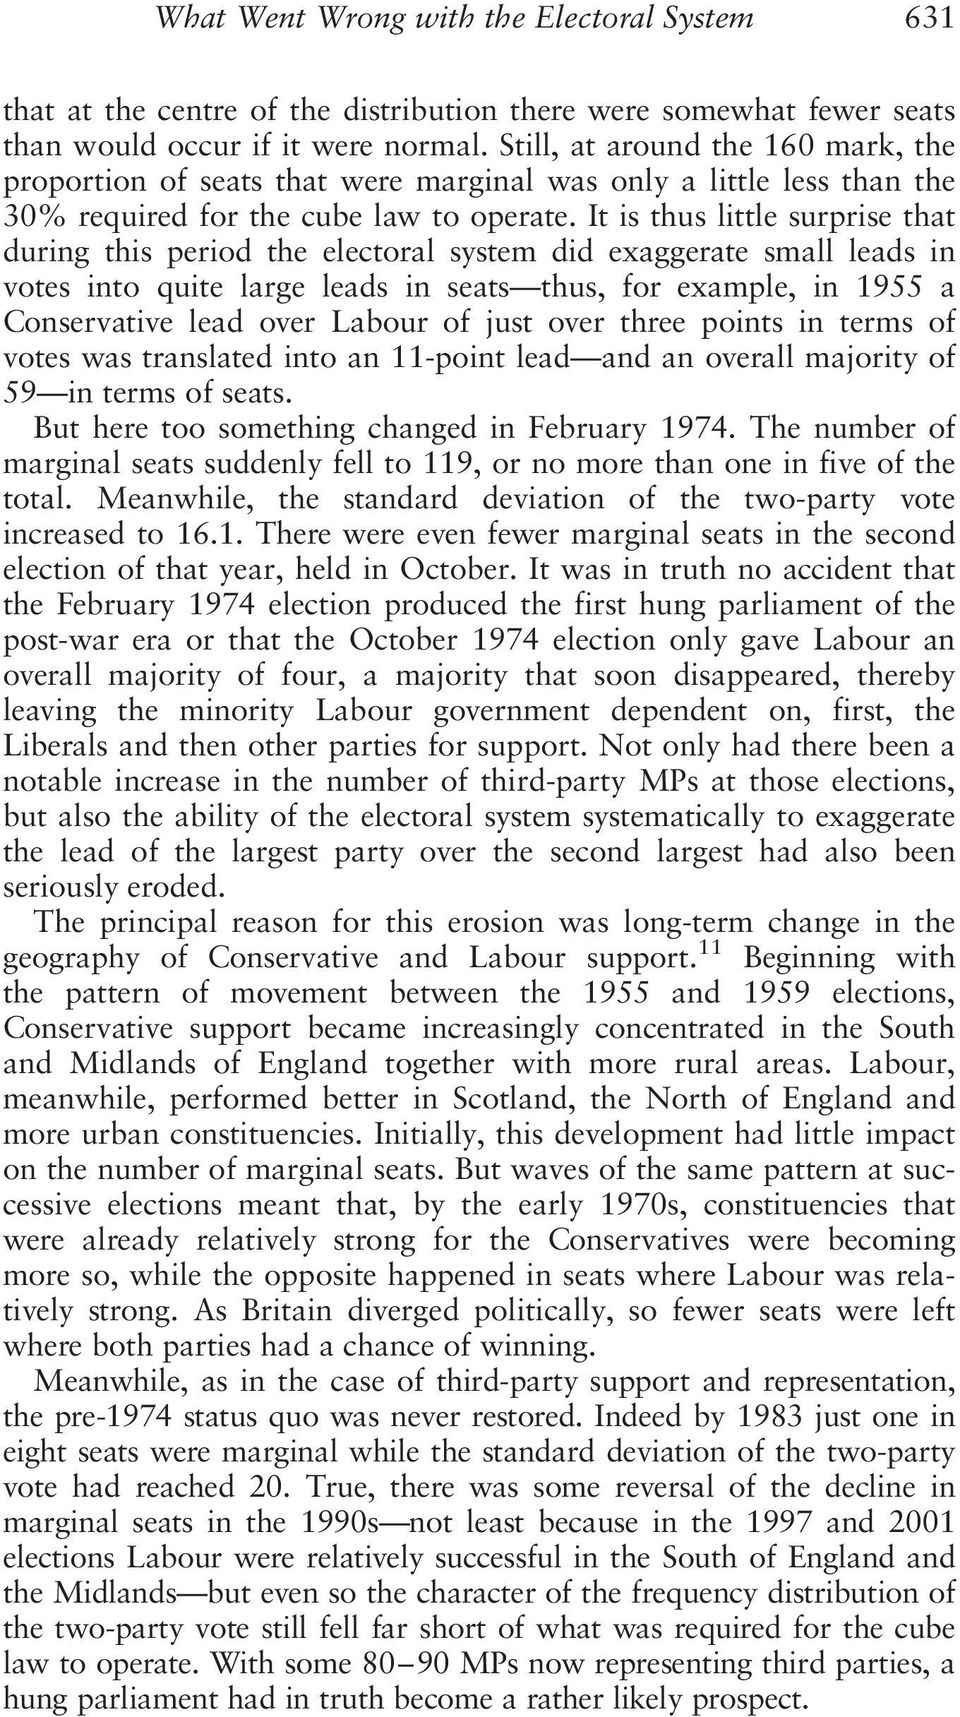 It is thus little surprise that during this period the electoral system did exaggerate small leads in votes into quite large leads in seats thus, for example, in 1955 a Conservative lead over Labour